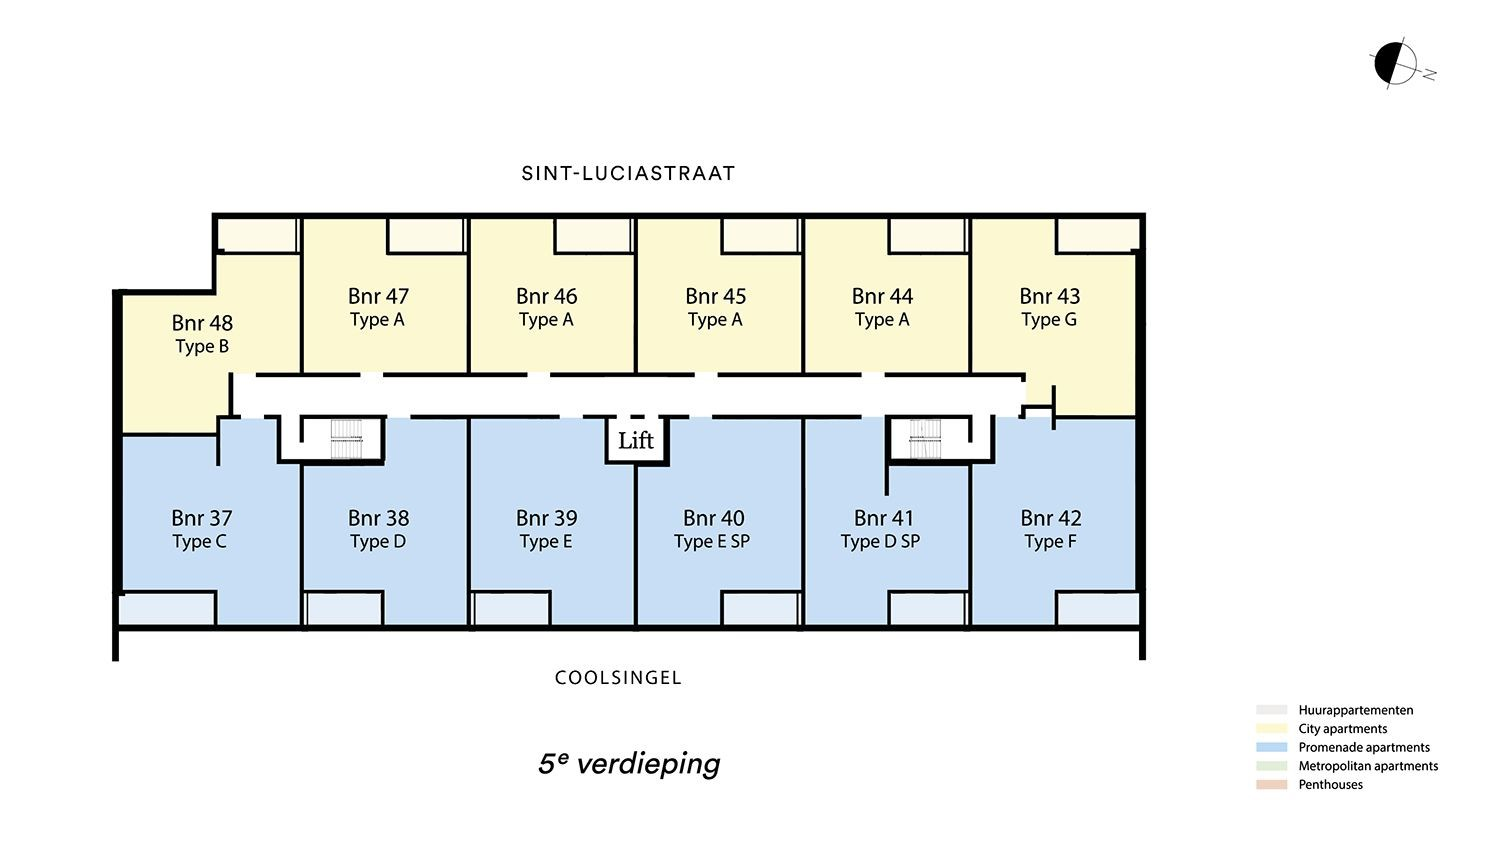 Floor plan verdieping 5 Type G - City apartment N� 75 coolsingel